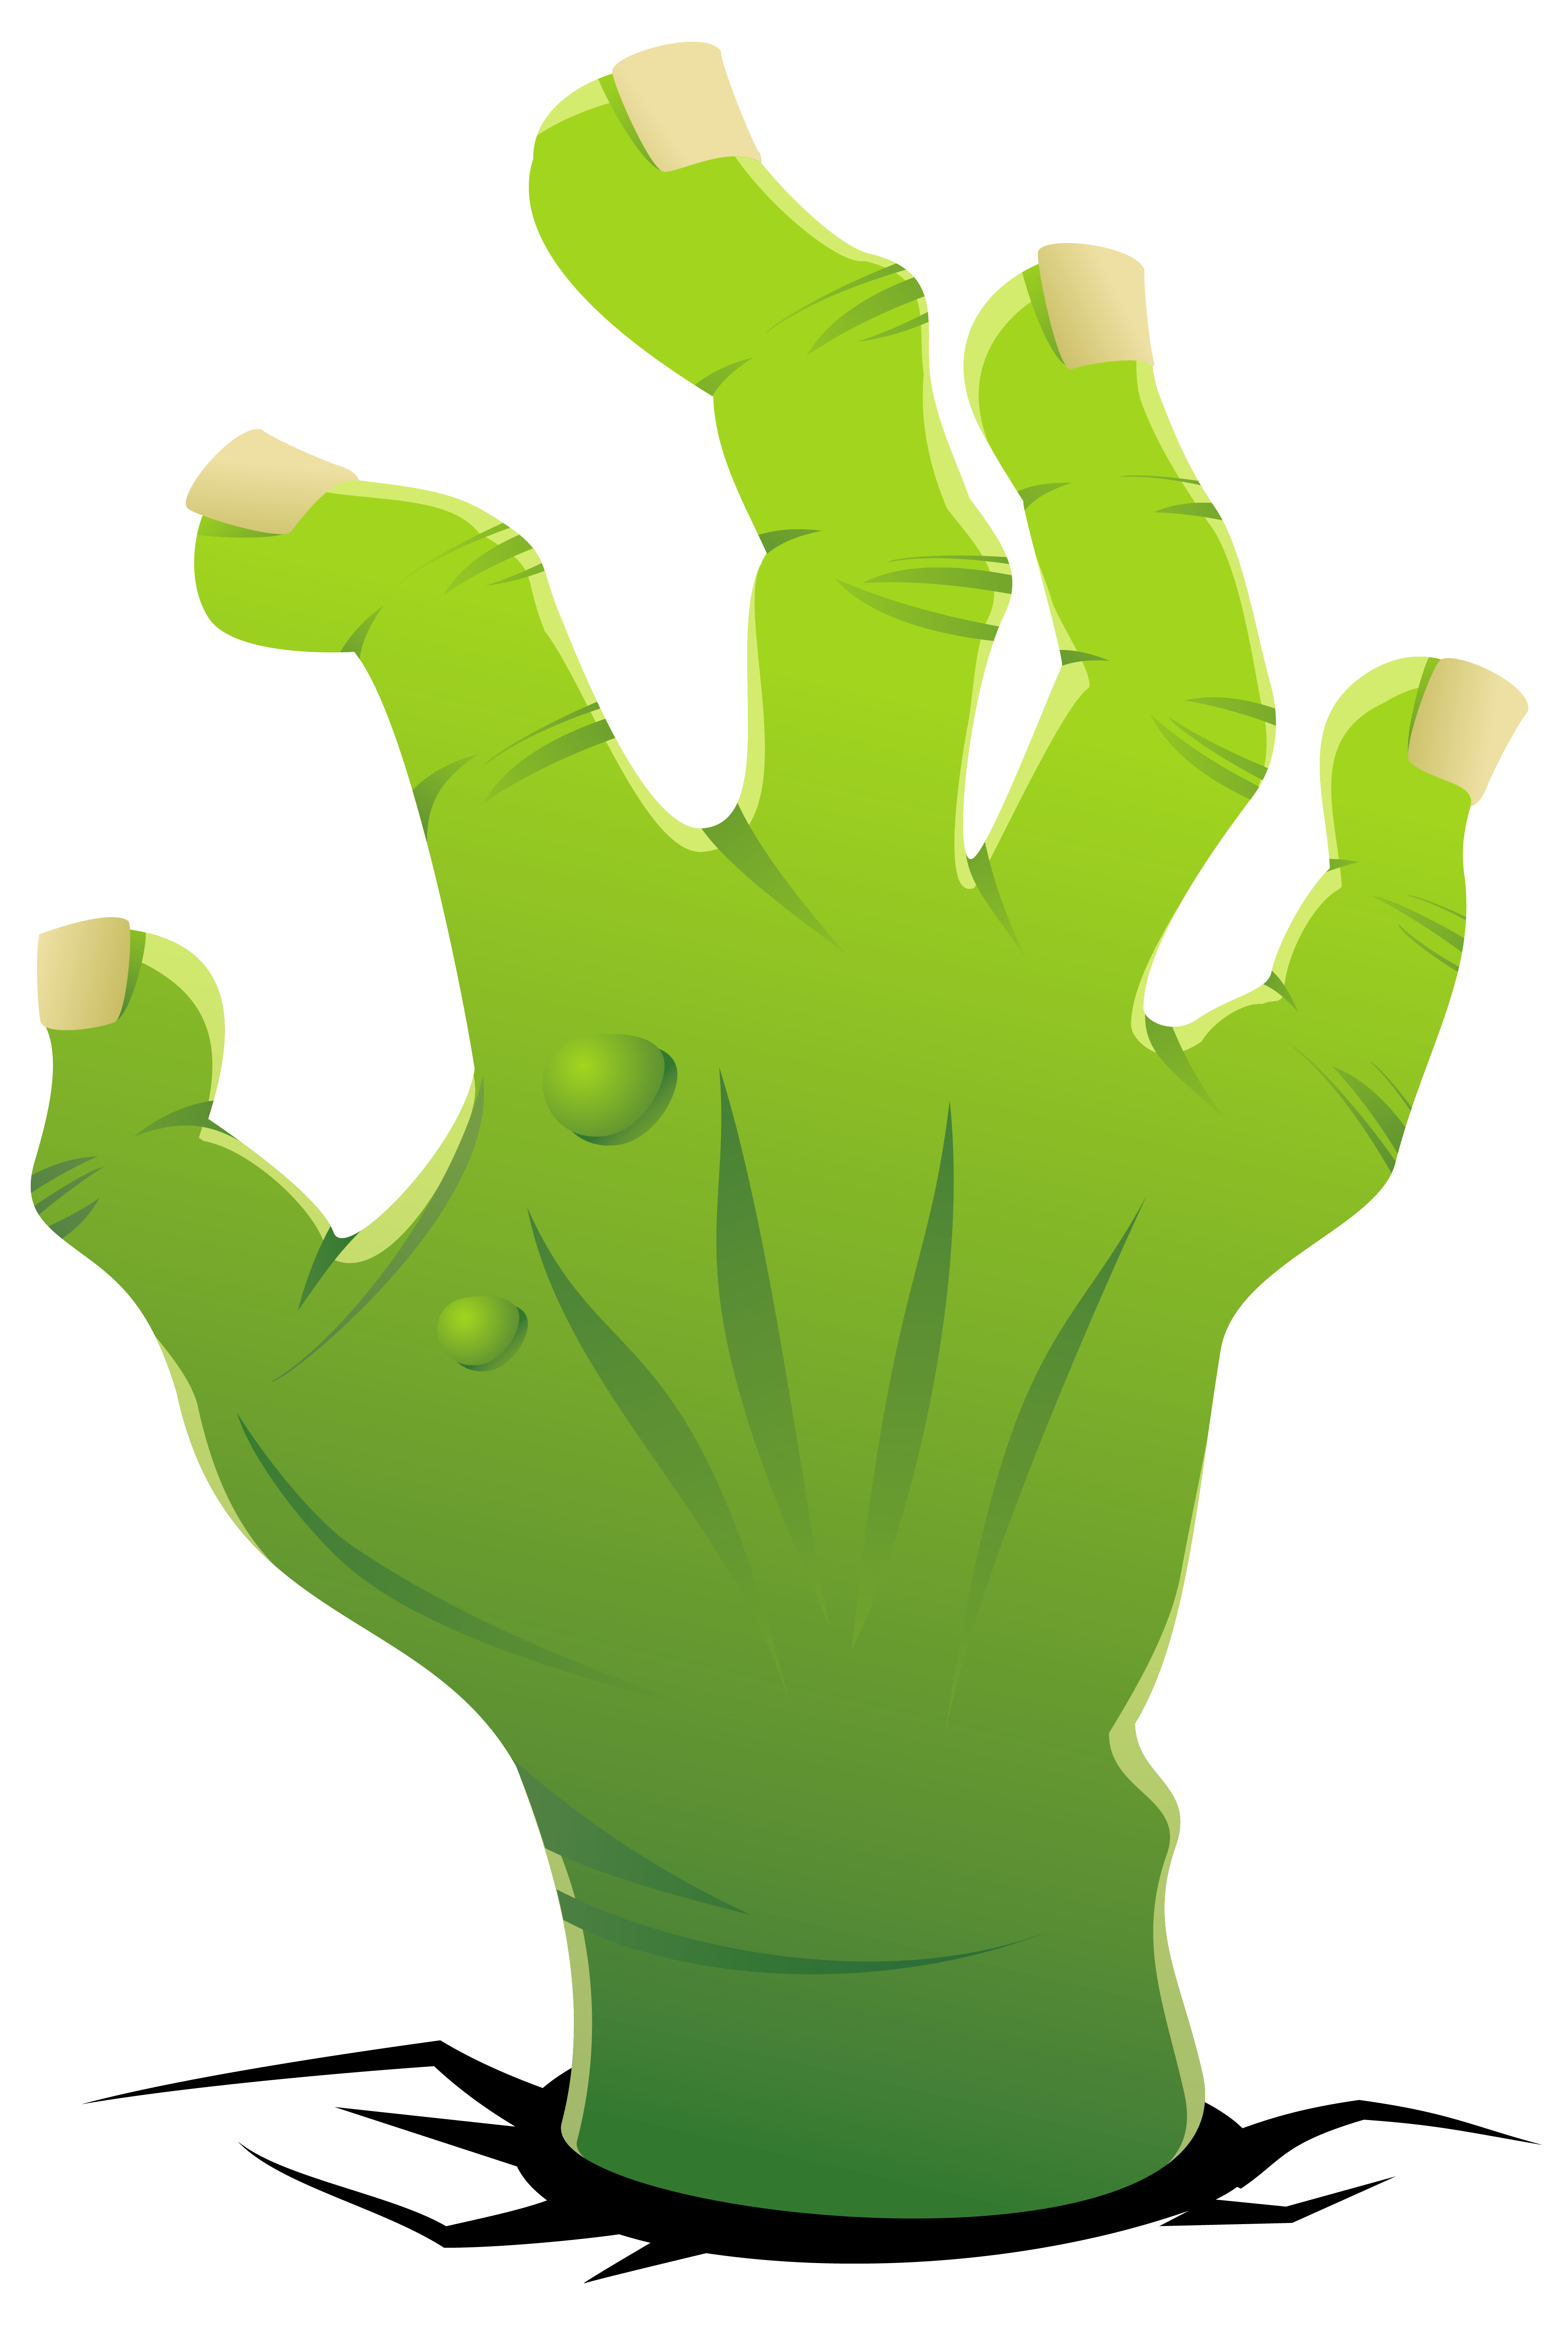 3979x5899 Zombie Hand Png Clipart Imageu200b Gallery Yopriceville